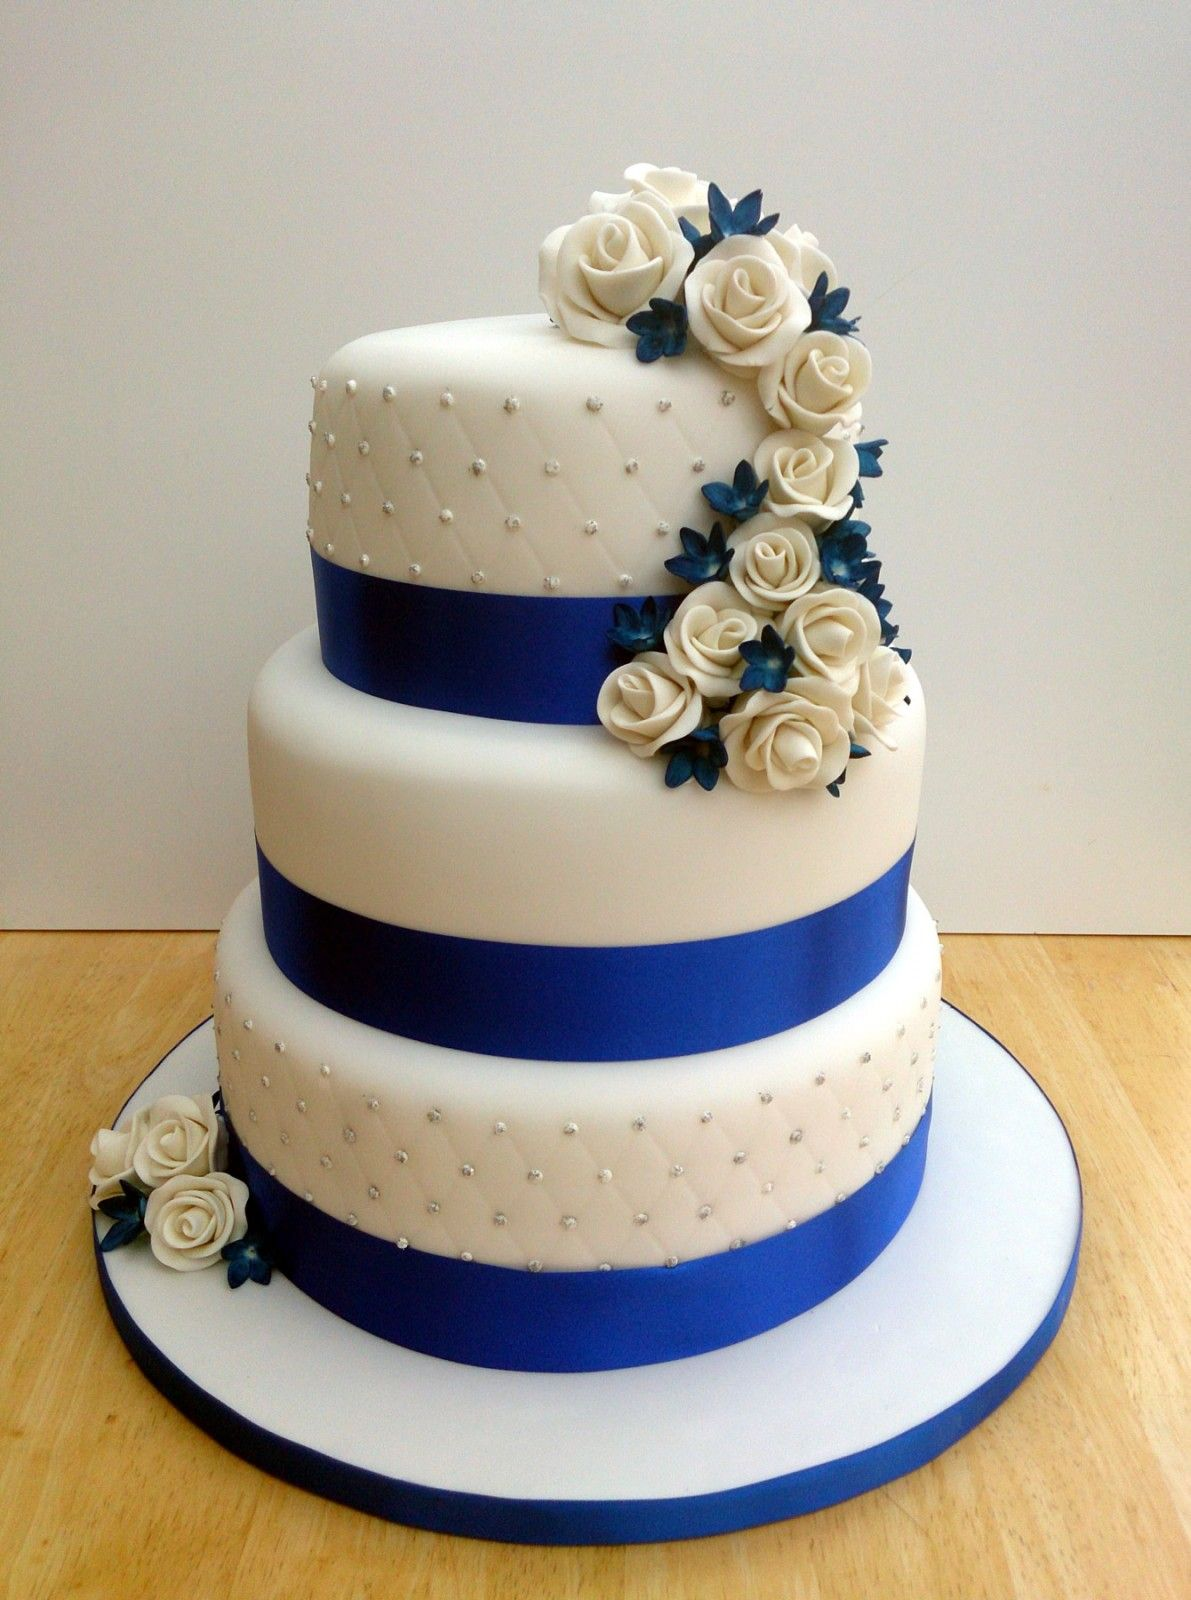 3 tier round stacked wedding cake with sapphire blue and white 3 tier round stacked wedding cake with sapphire blue and white izmirmasajfo